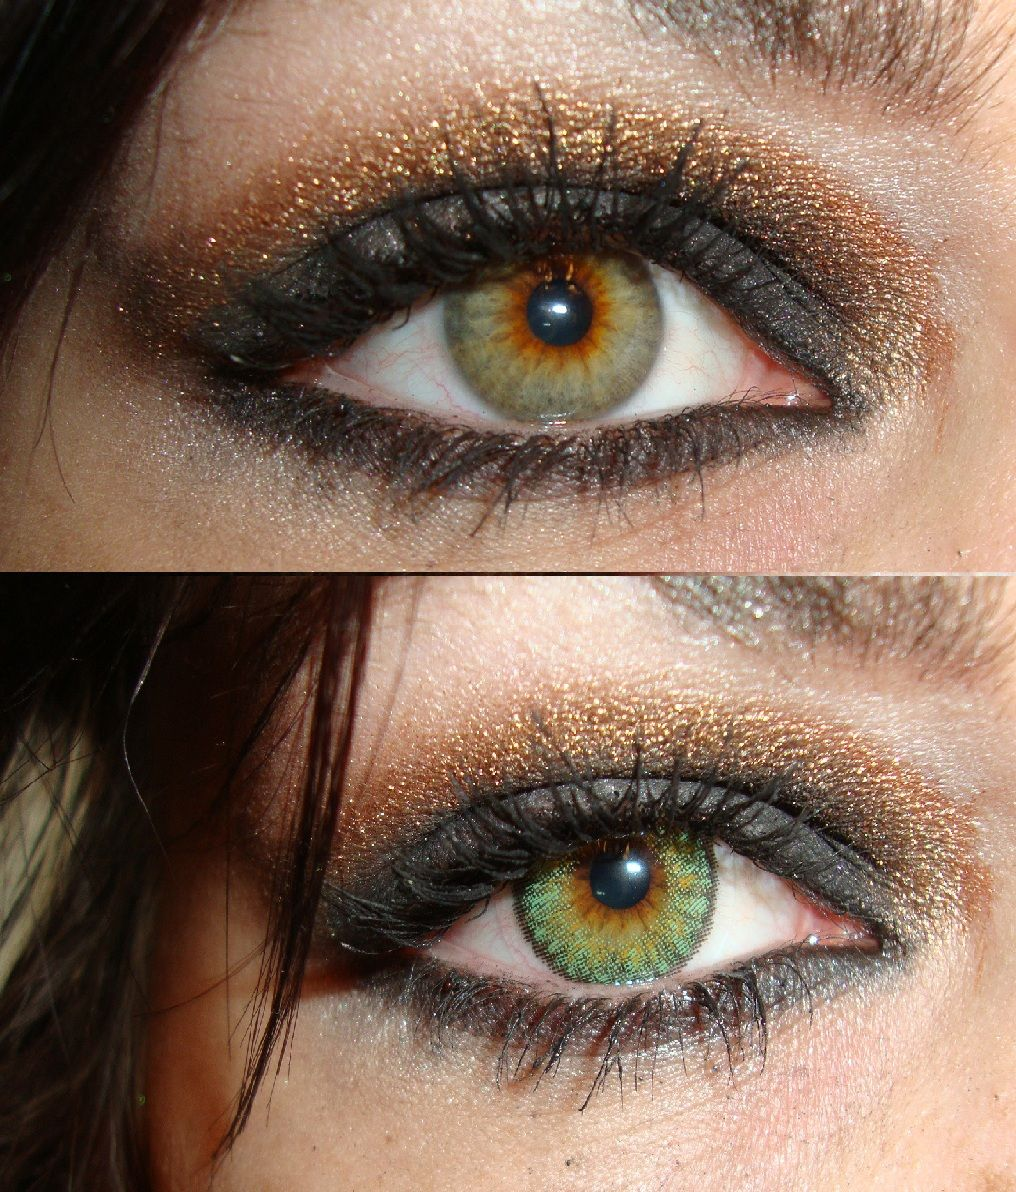 Color Contacts Are So Much Fun. The Top One Is My Natural